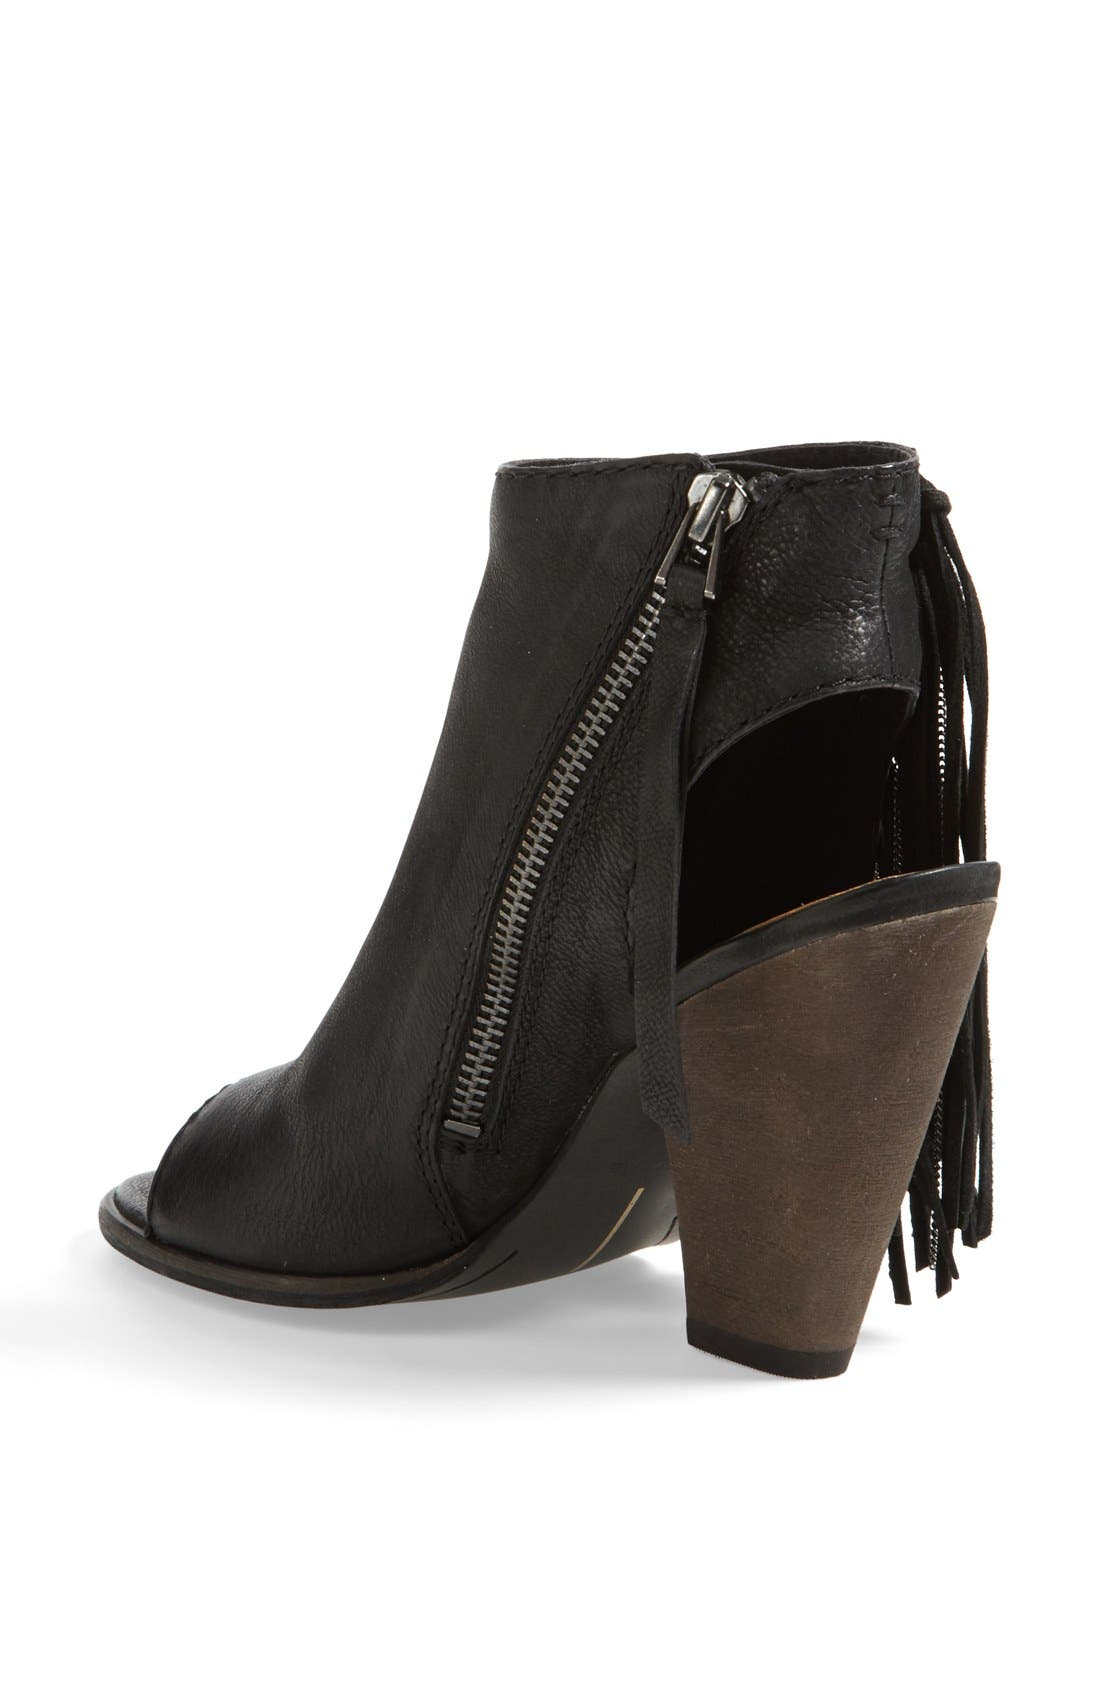 DOLCE VITA, 'Noralee' Bootie, Alternate thumbnail 4, color, 001